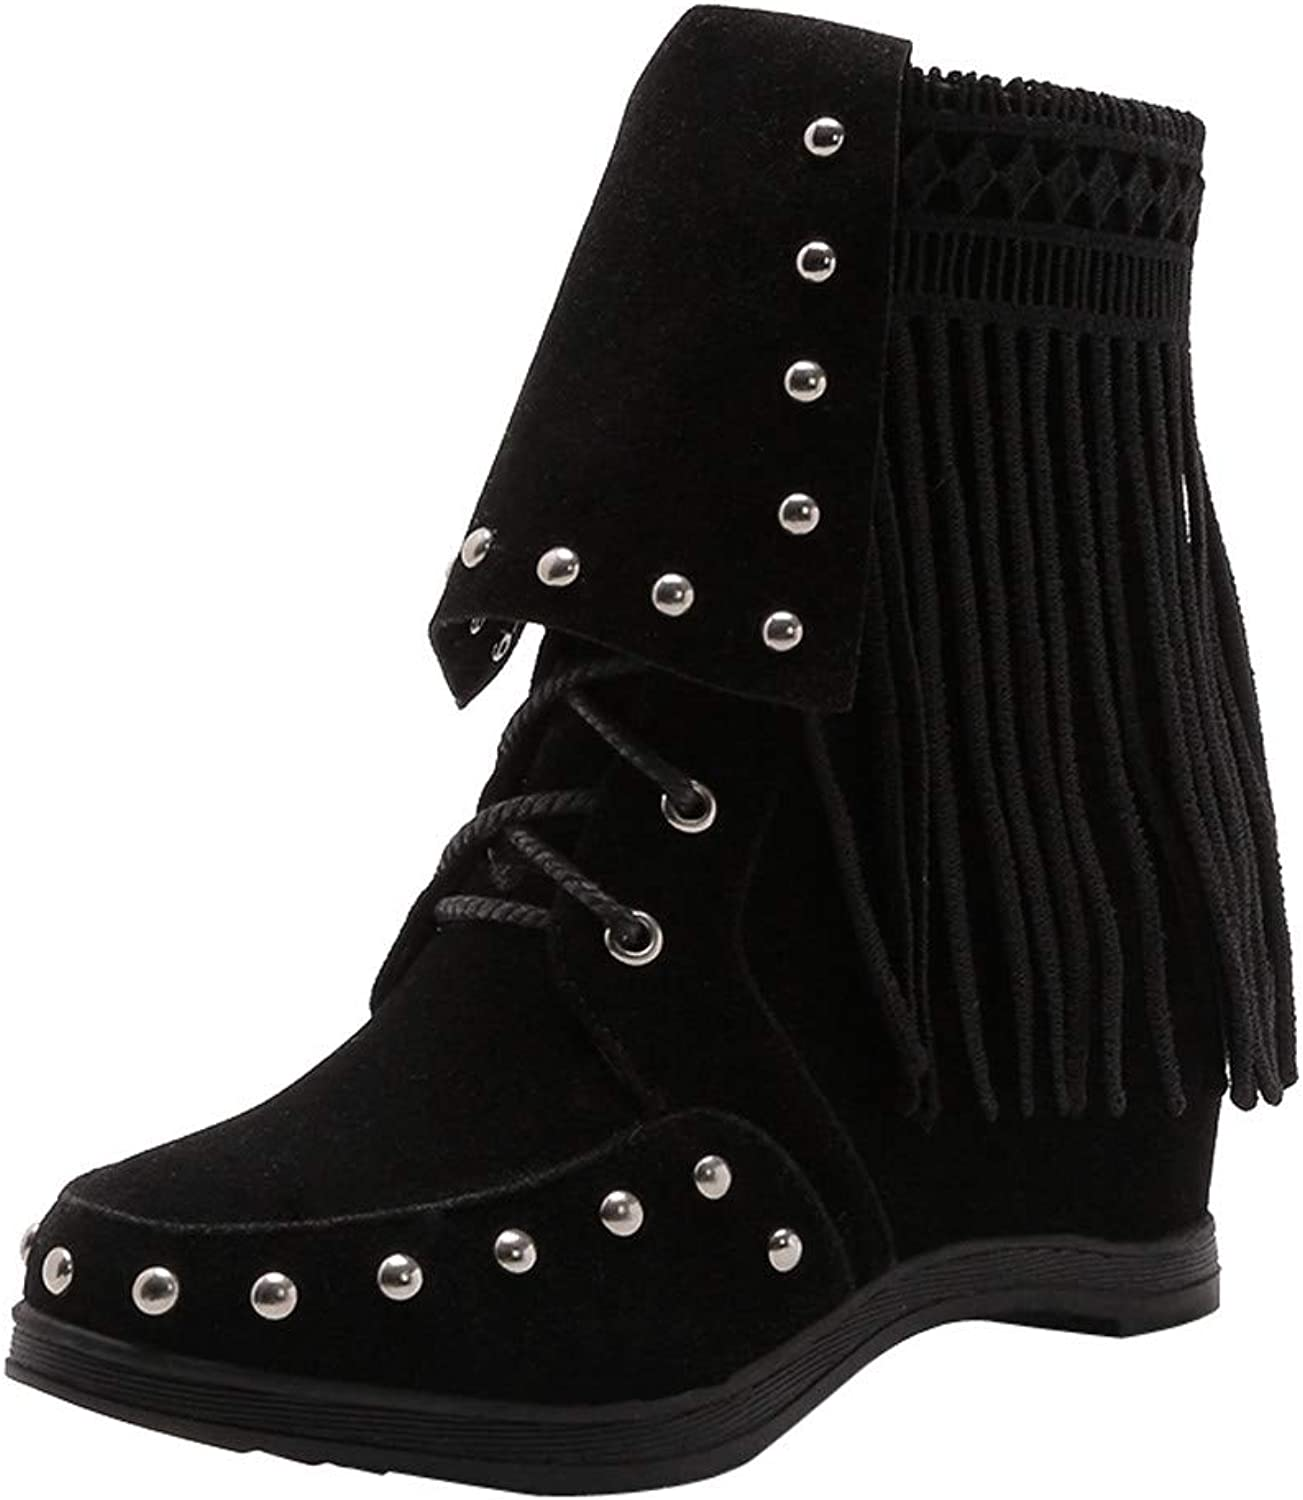 JESPER Women Winter Spring Suede Tassel Snow Boots Wedges Round Toe Lace-Up Ankle Boots